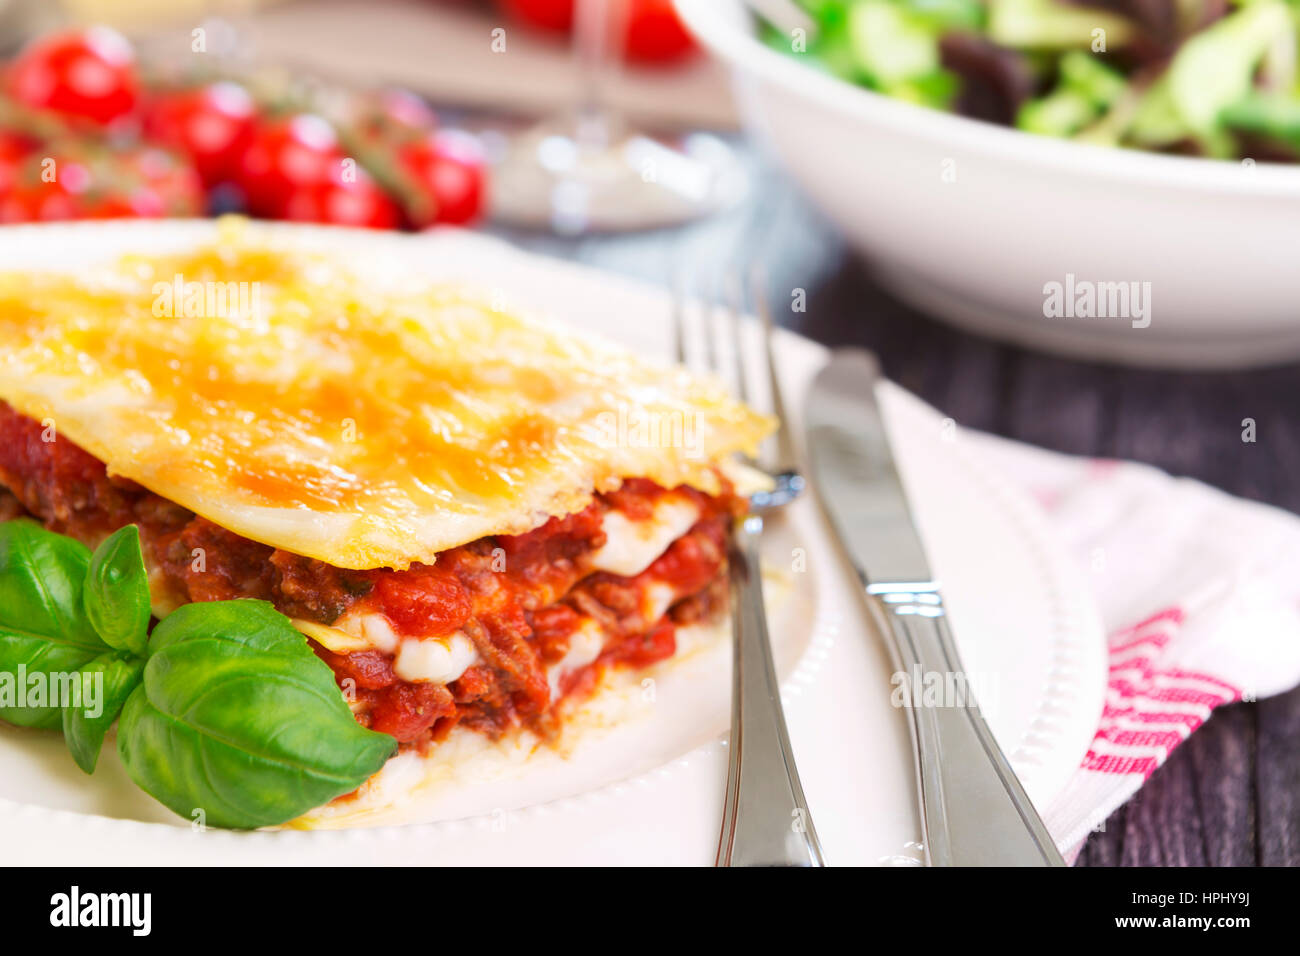 A portion of homemade lasagna on a plate, served with a salad on the side. - Stock Image